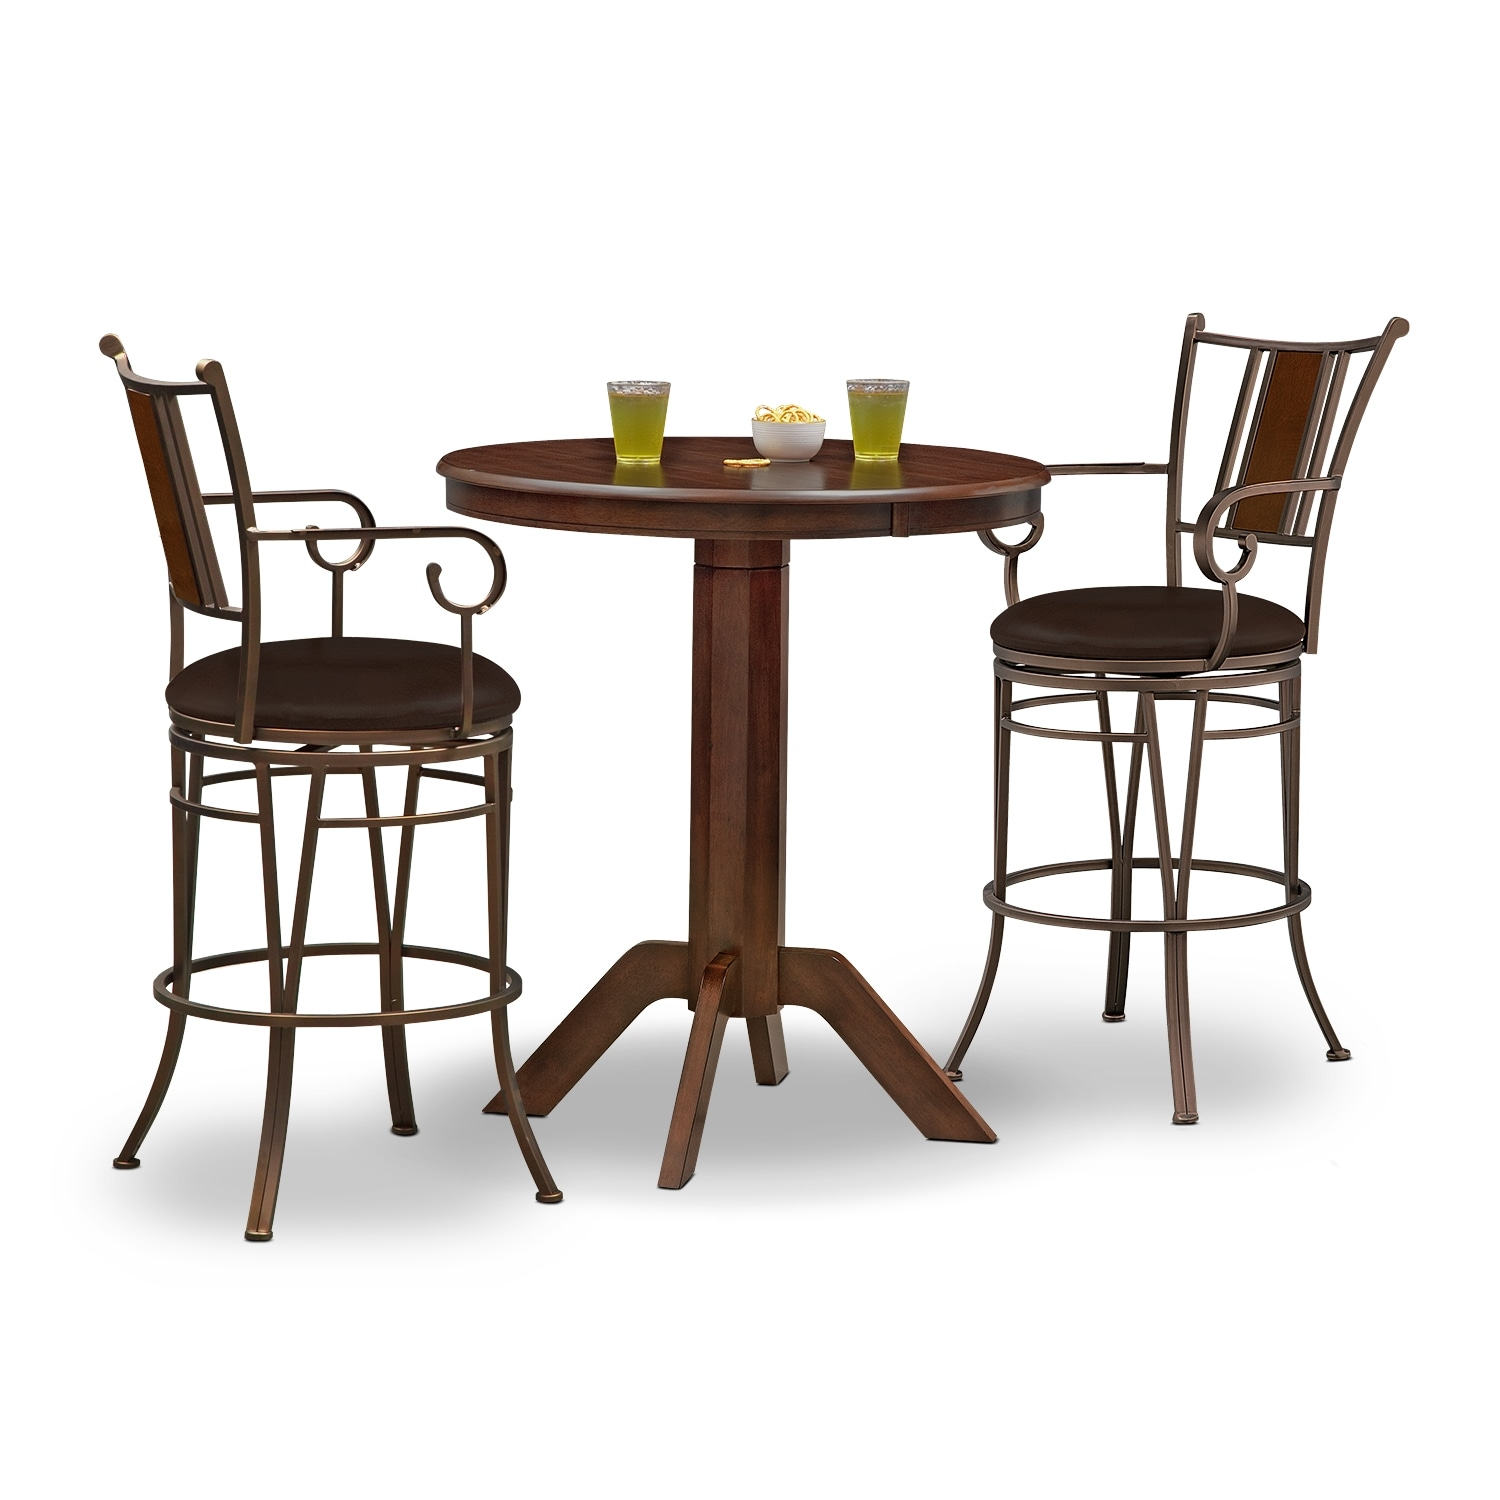 Accent and Occasional Furniture - Concord Camden 3 Pc. Bar-Height Dinette